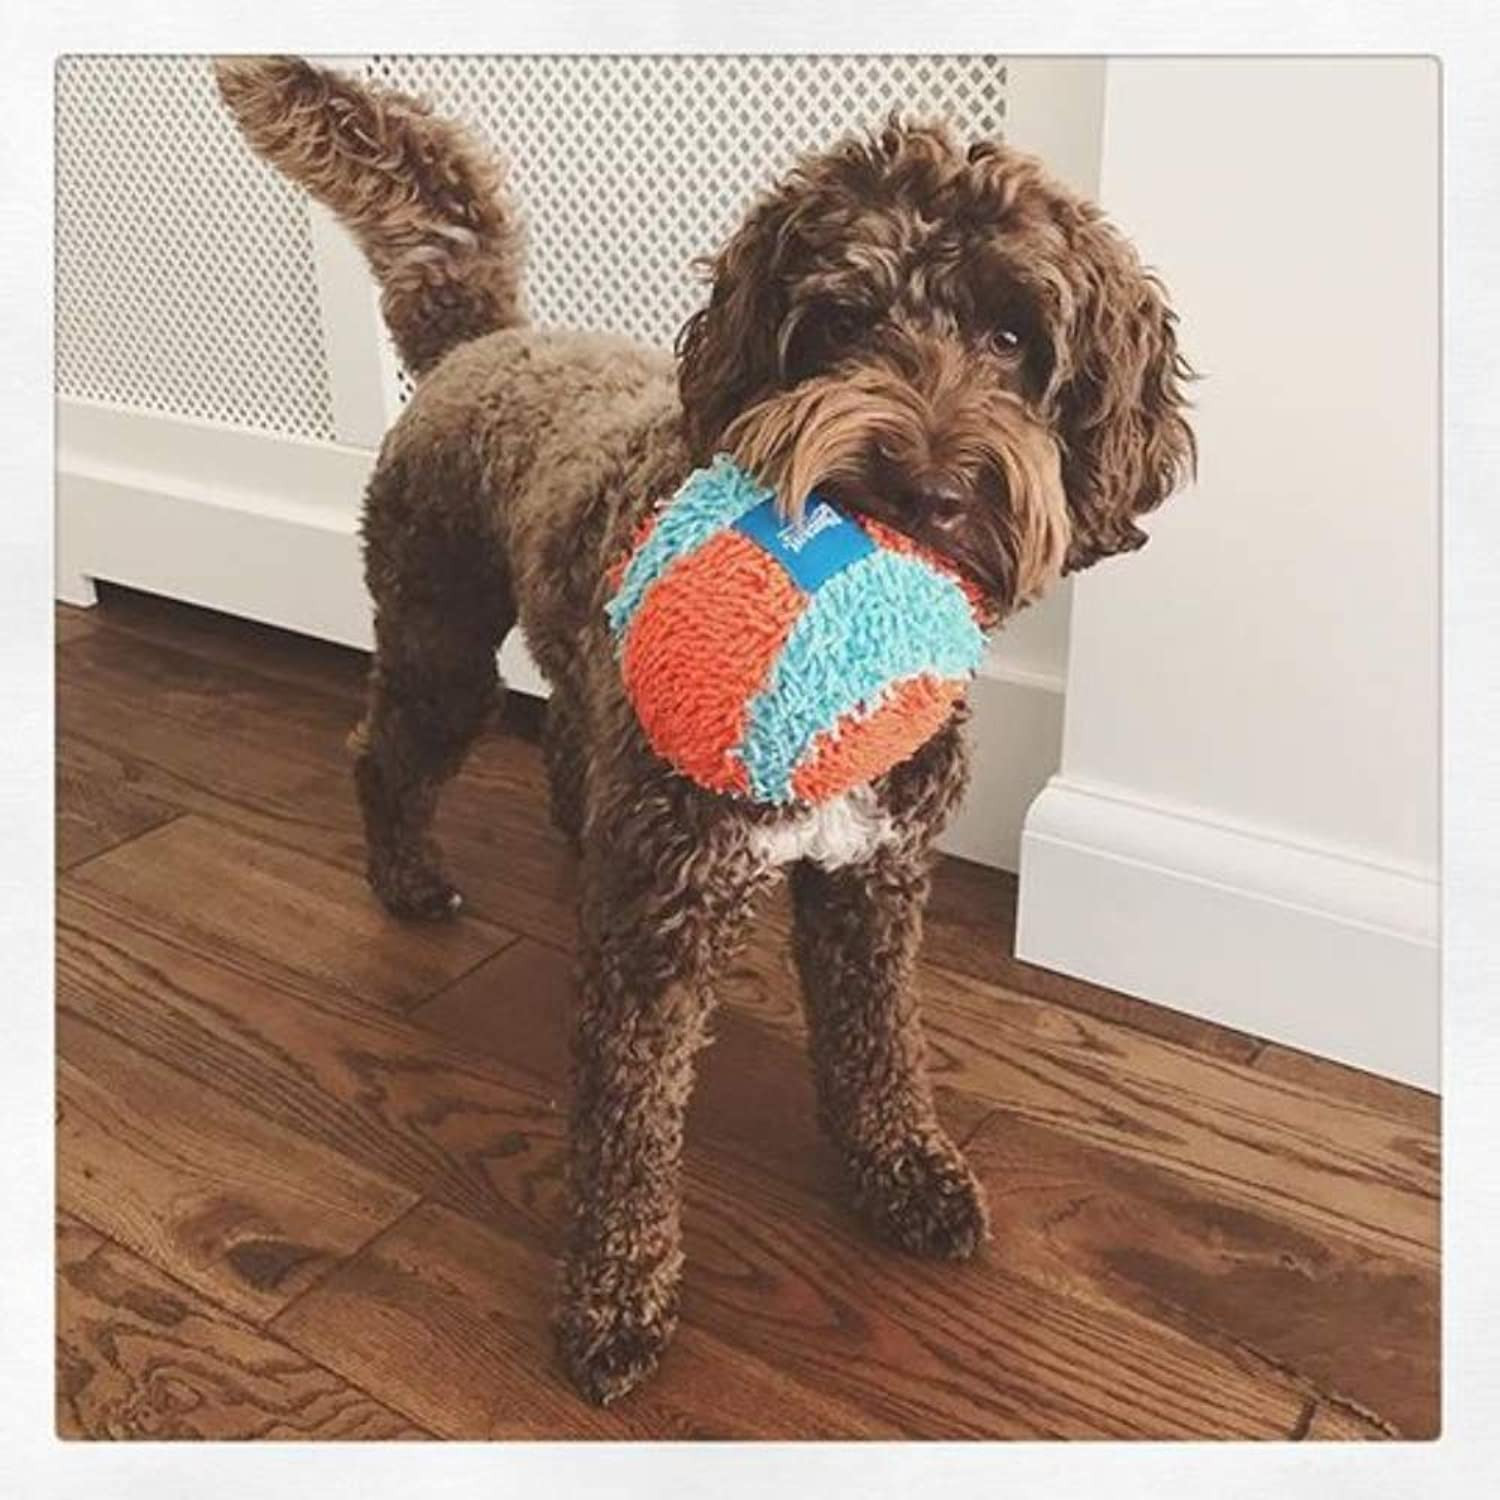 YQSMB Indoor Ball for Small Dogs and Puppies Dog Toy orange blueee One Size